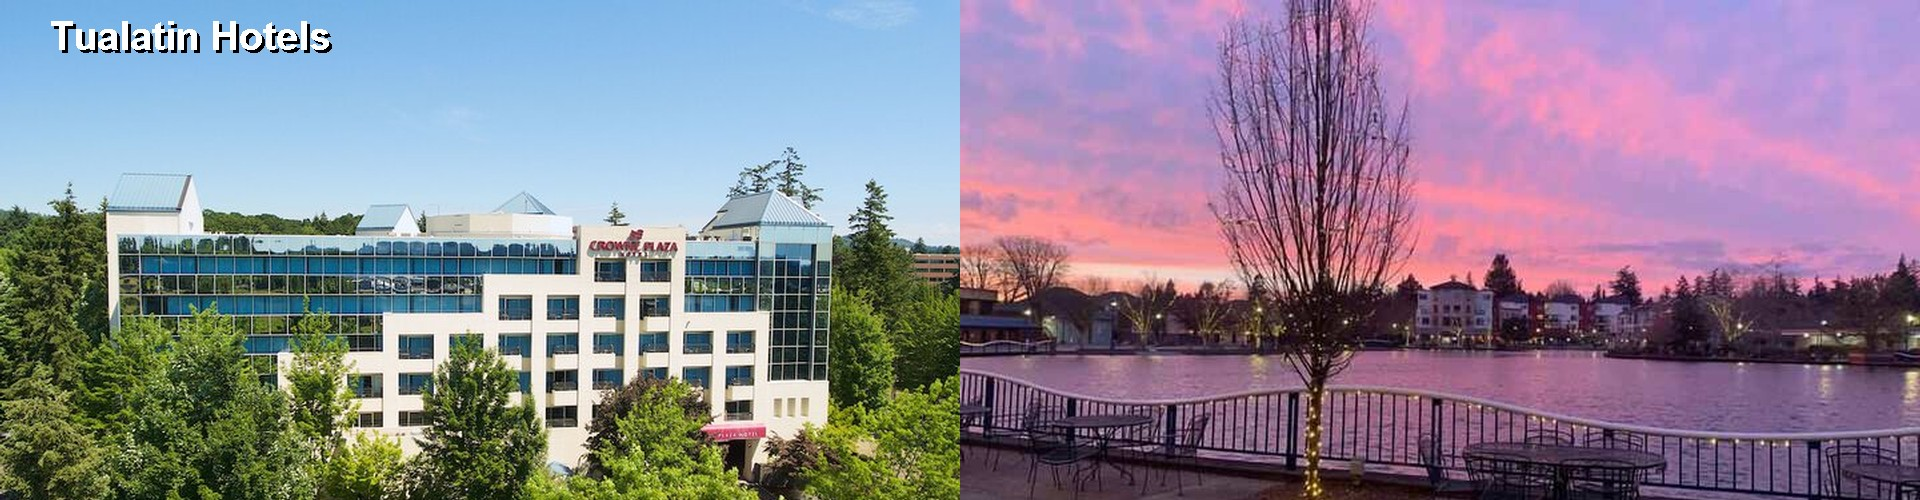 5 Best Hotels near Tualatin